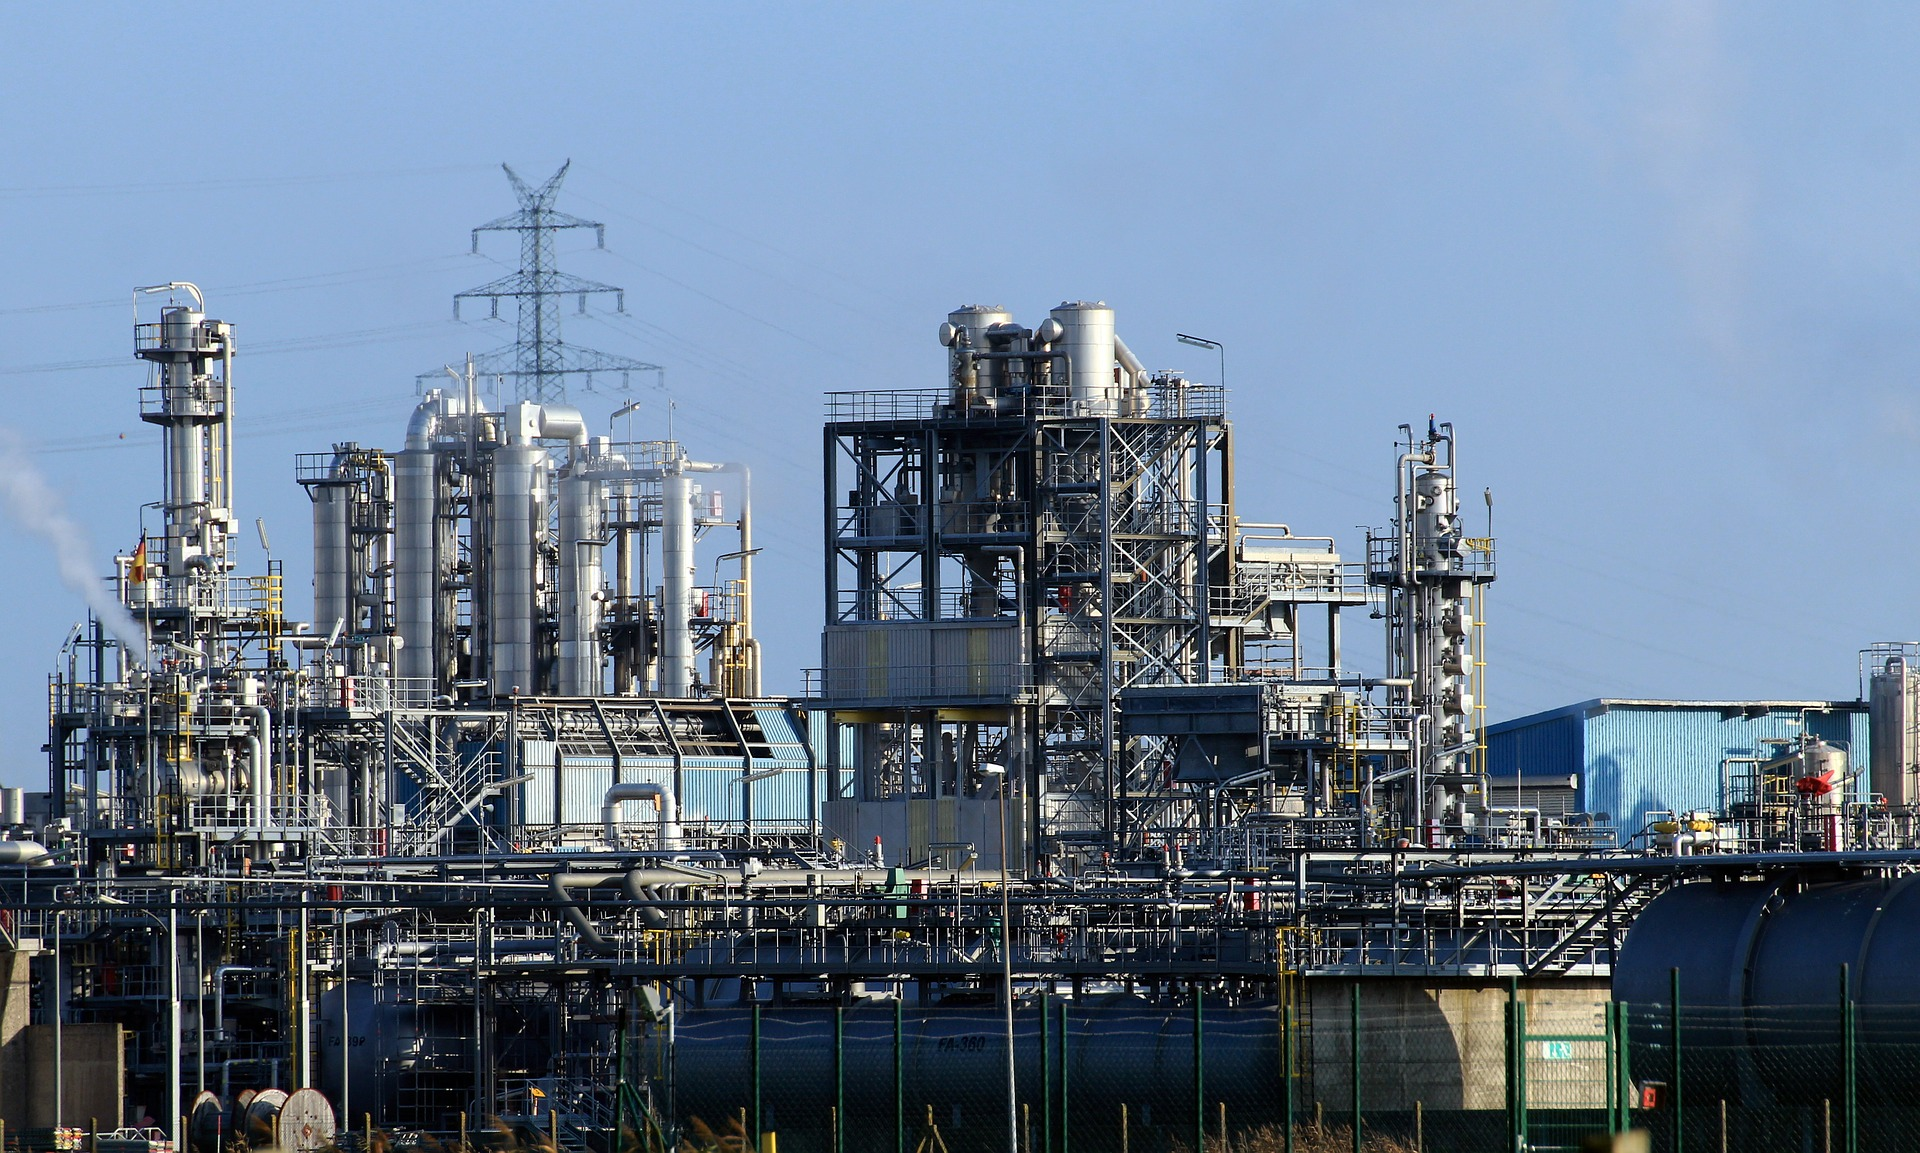 REFINERY, OILFIELD & WATER TREATMENT CHEMICALS